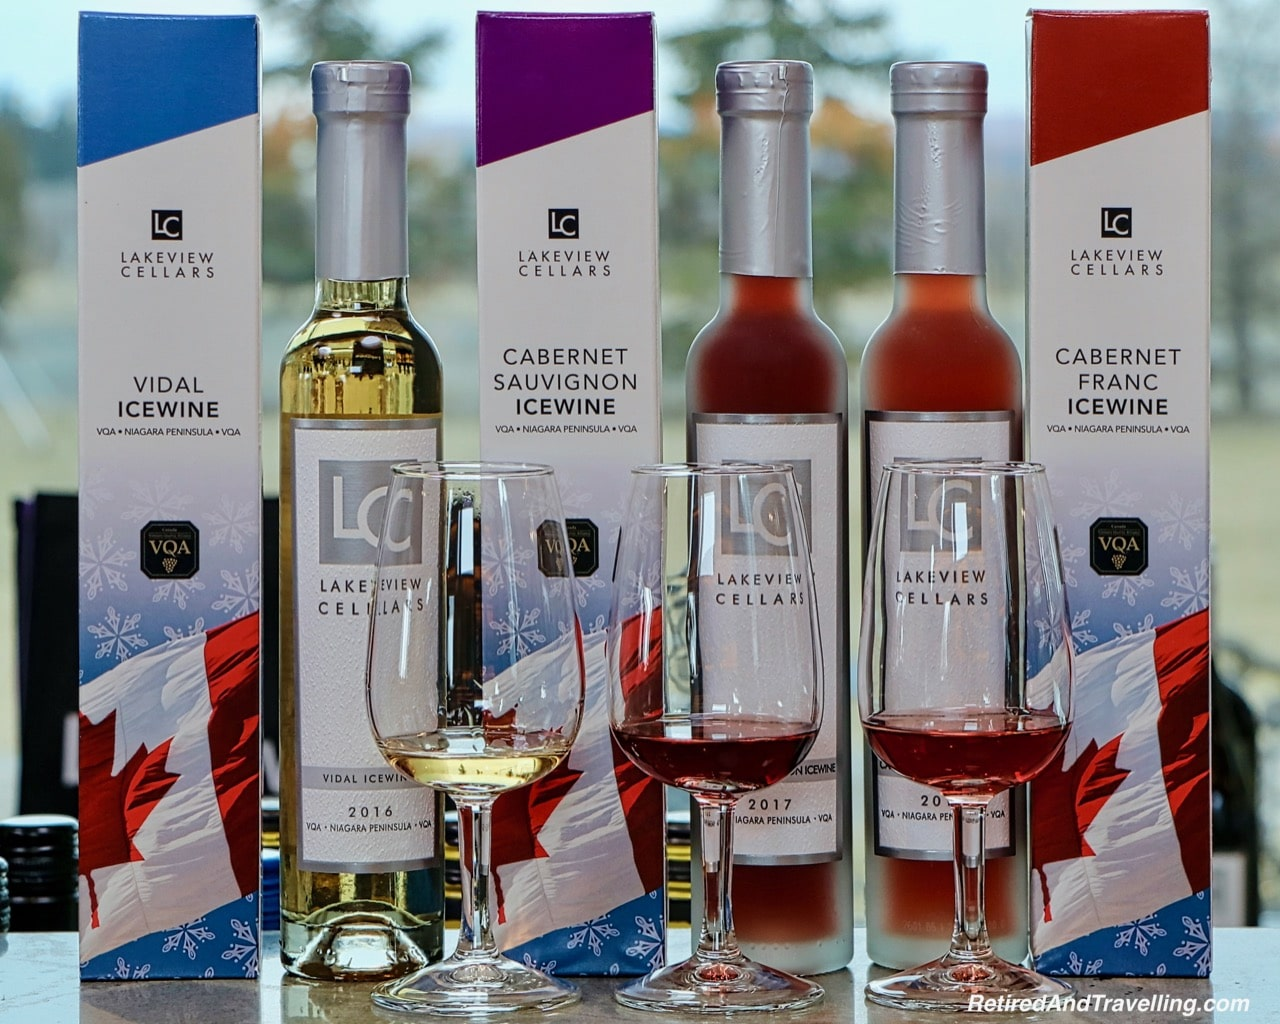 Lakeview Cellars Winery - Icewine Tasting in Niagara.jpg